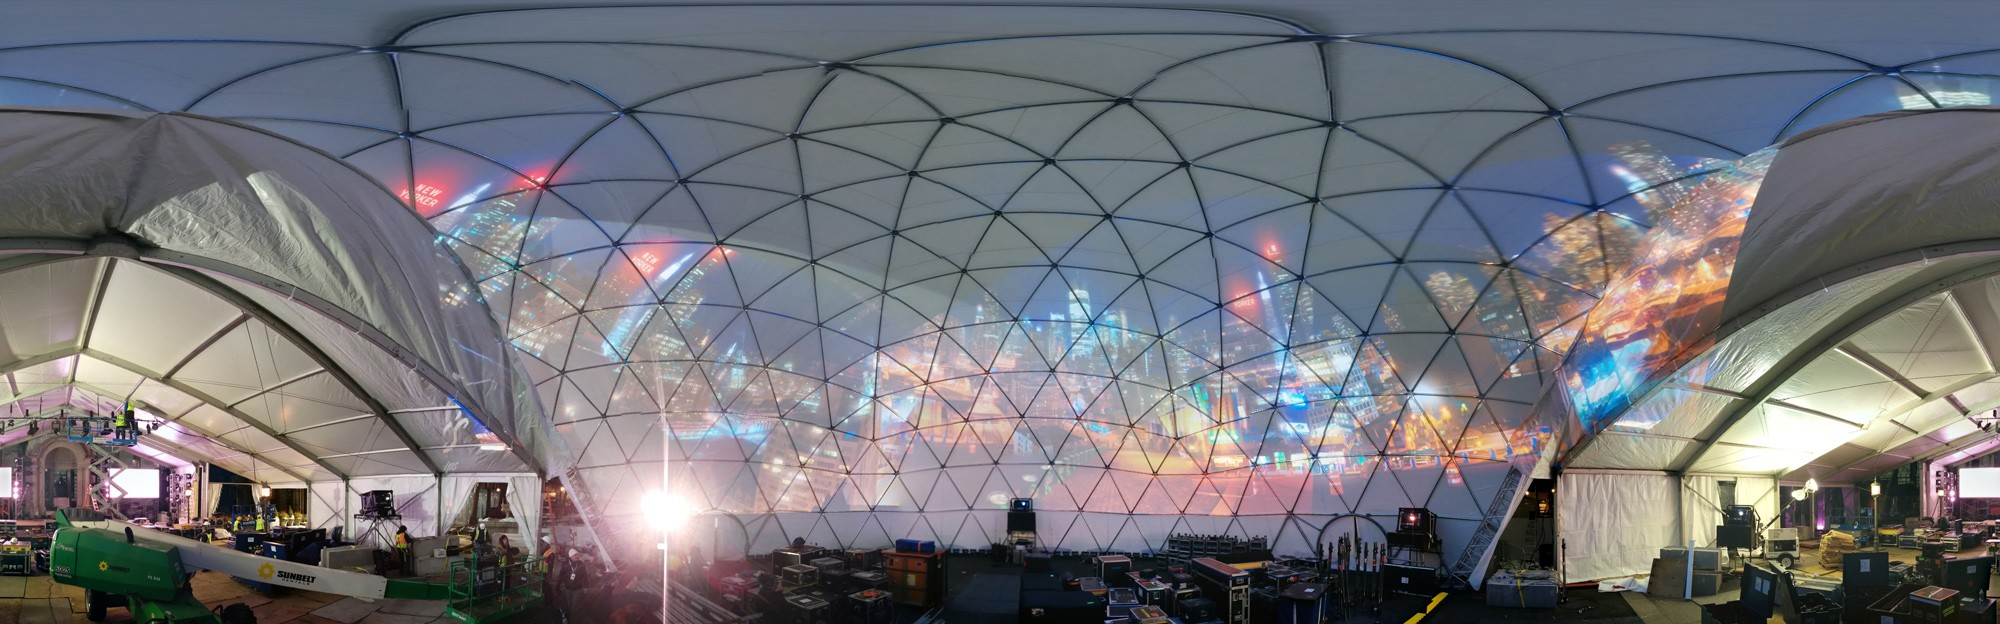 Temporary Dome - Superbowl 2014